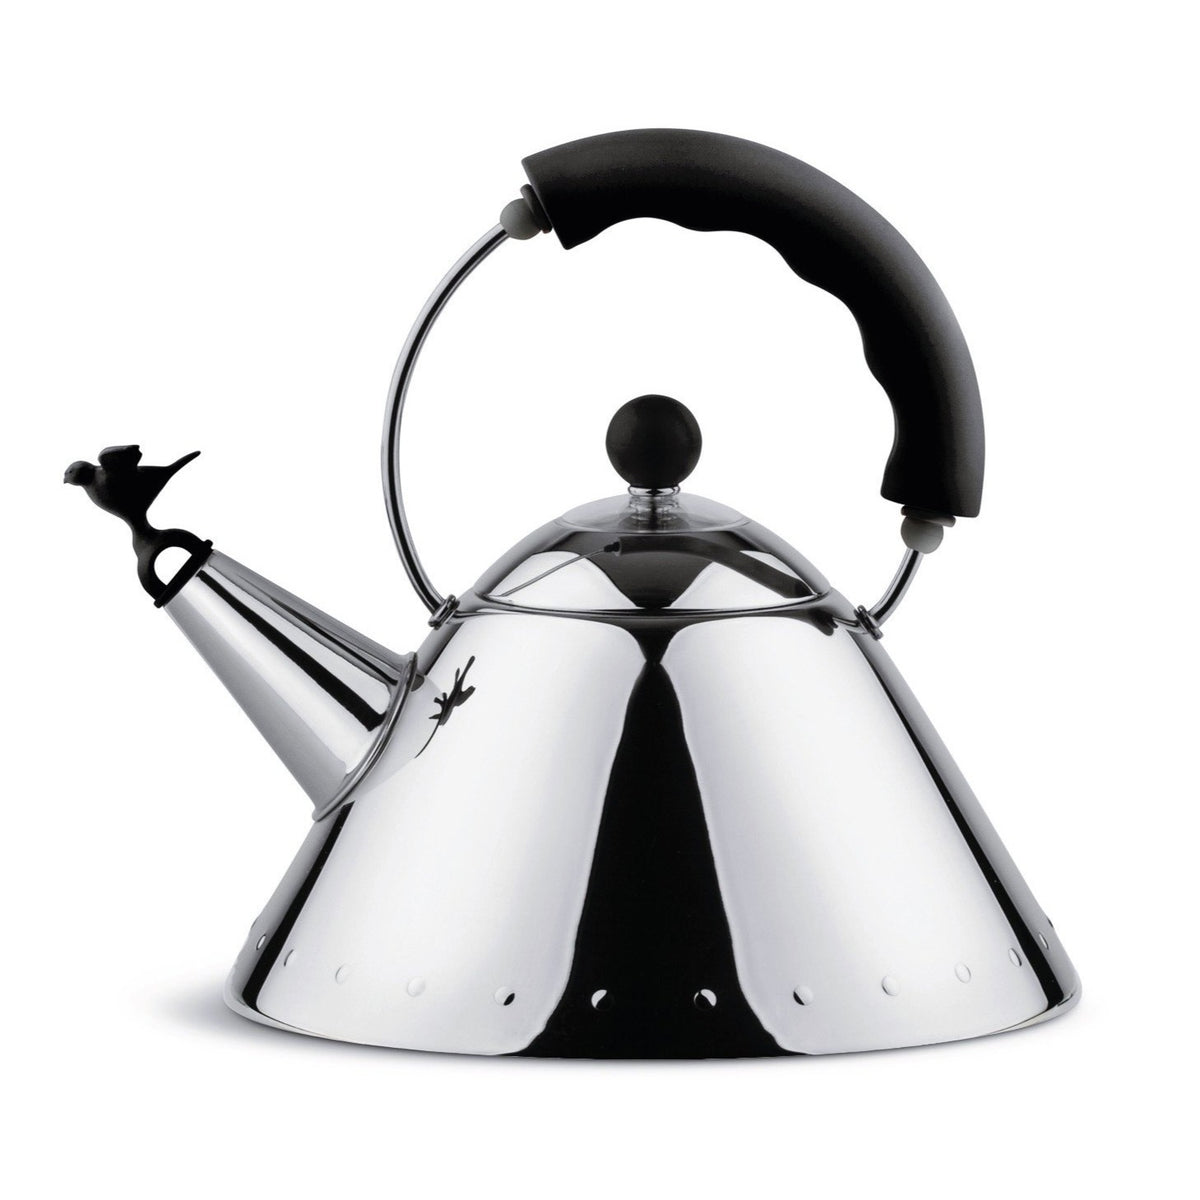 Michael Graves Tea Kettle with Black Handle